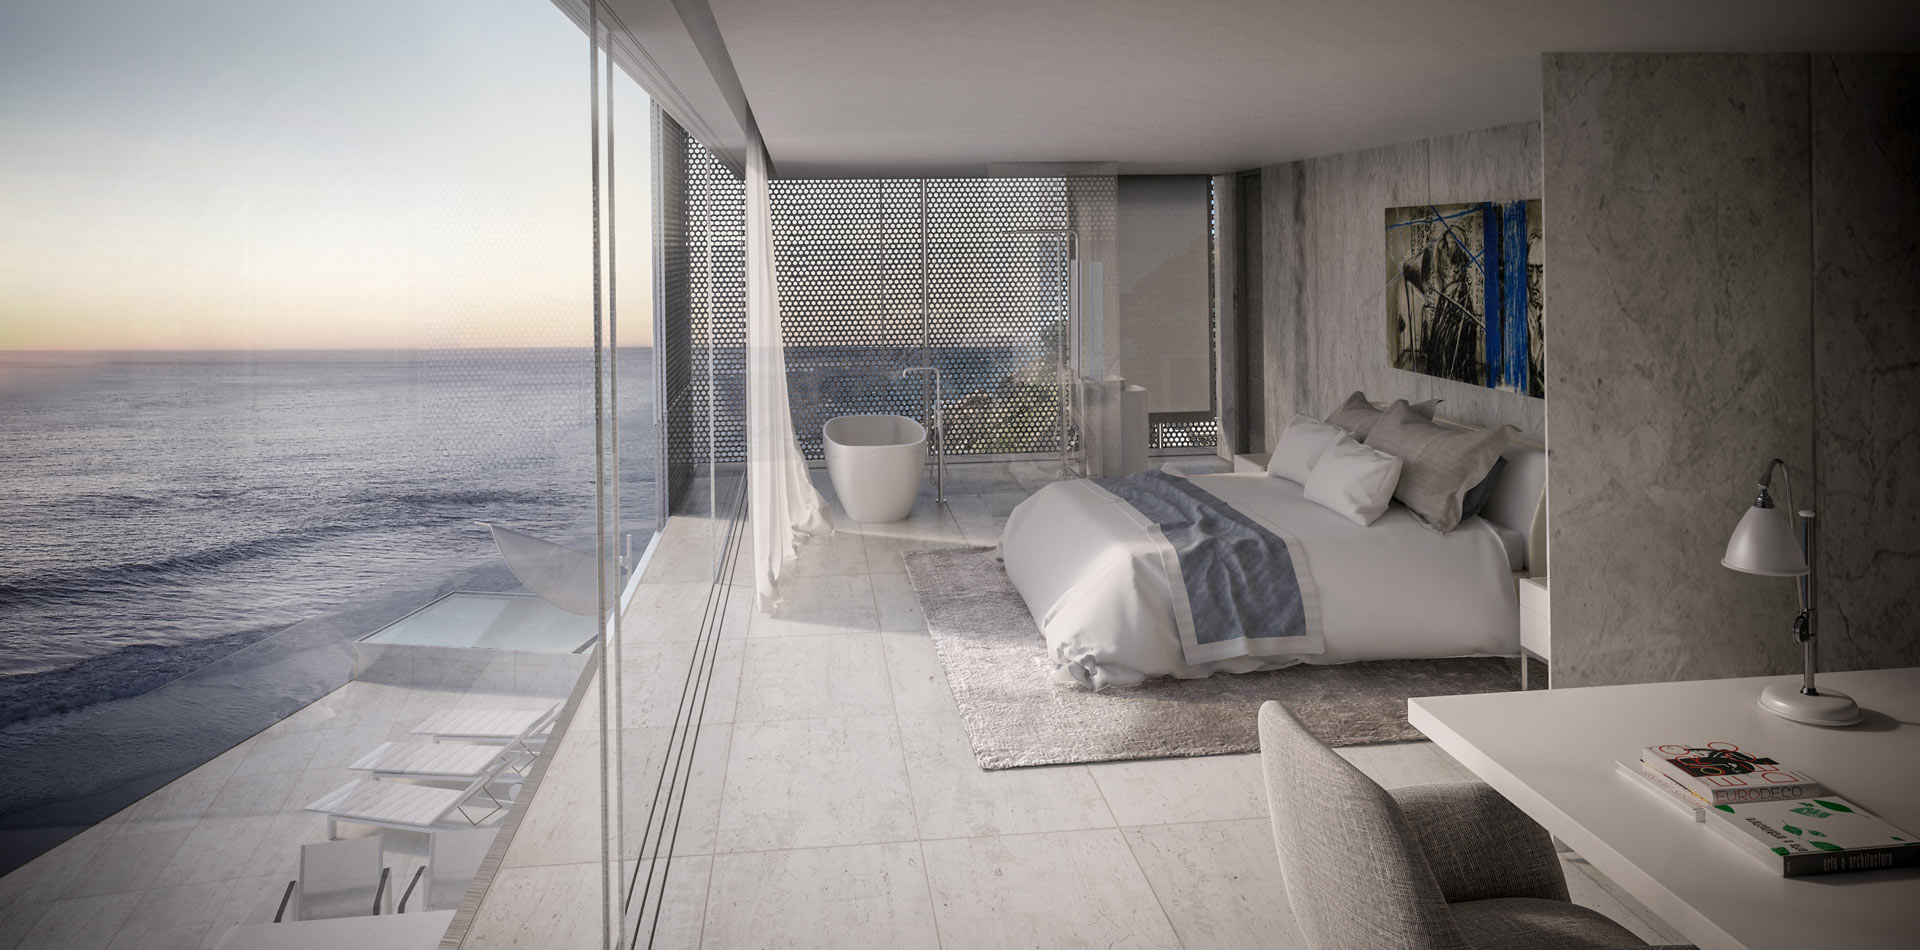 Terri Brown 3D visualisation Vray 3DS Max Cape Town Coast Luxury Modern Marble Bedroom Study View